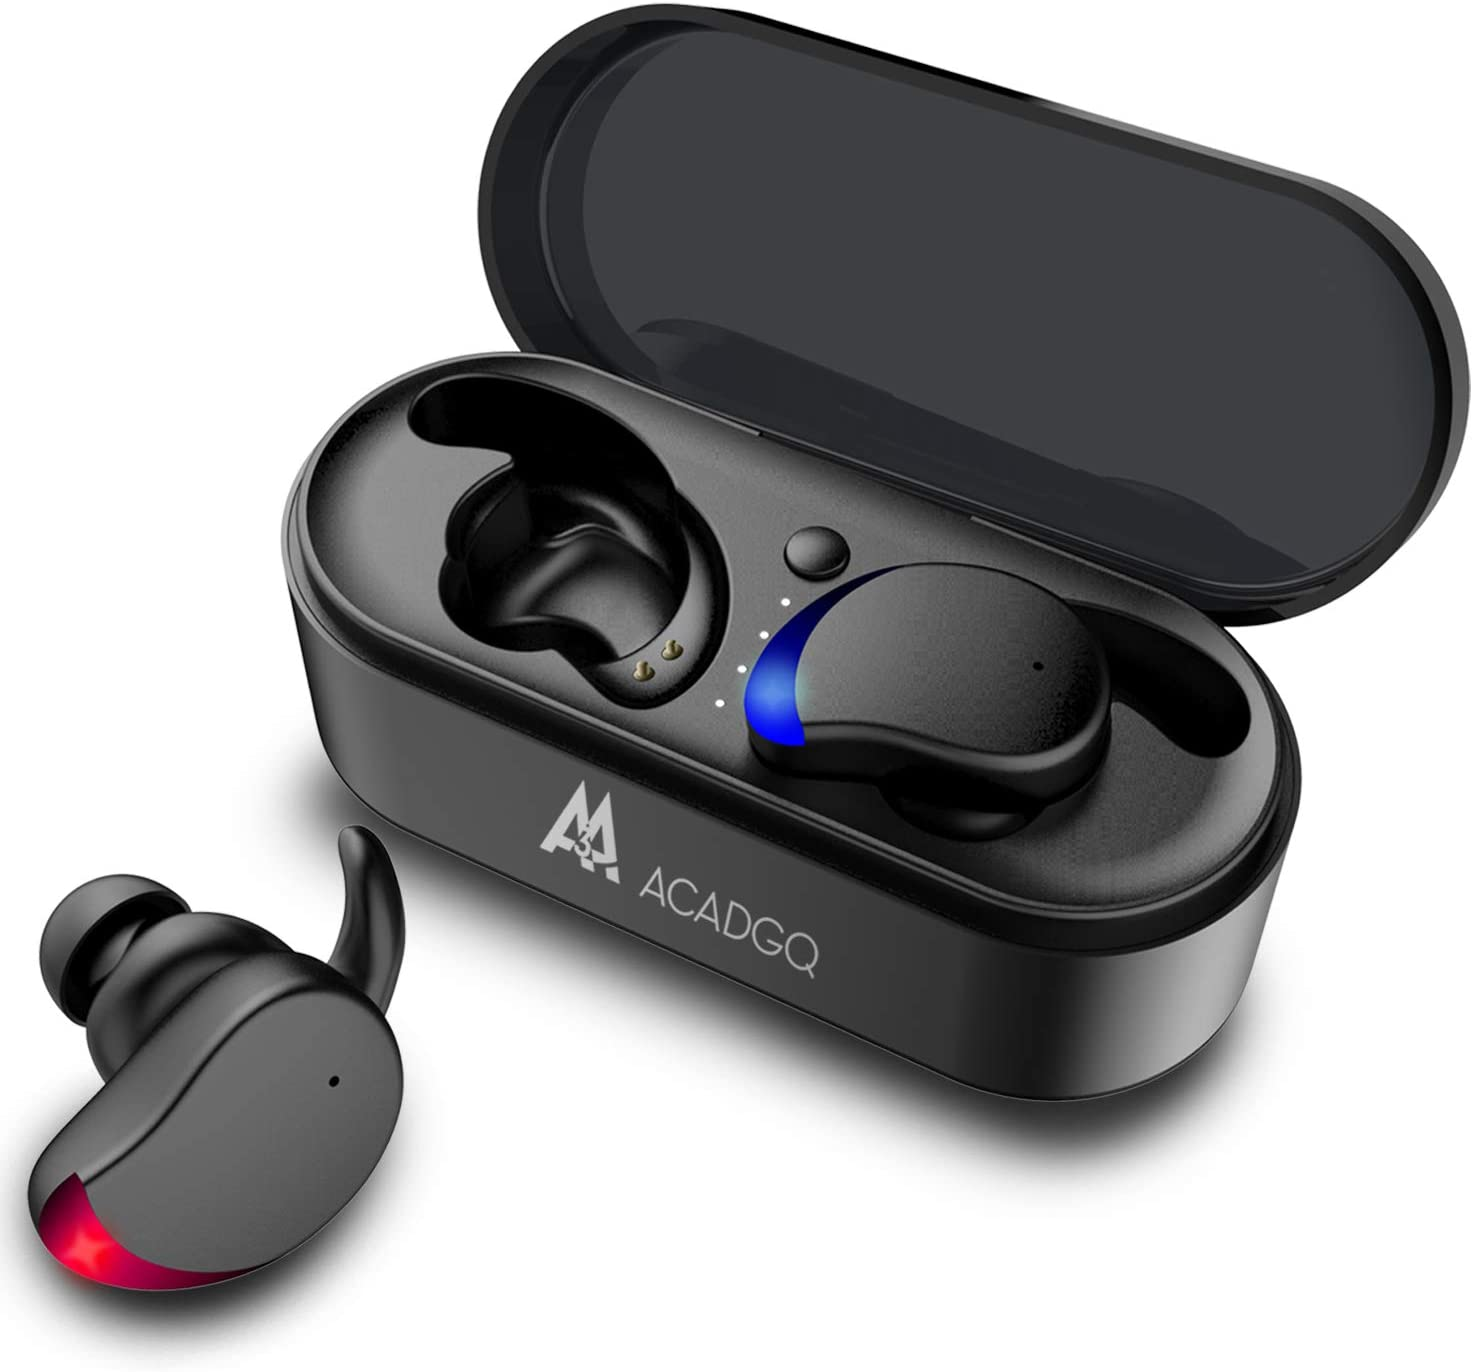 Bluetooth Earbuds Wireless, ACADGQ Bluetooth 5.0 Earbuds with Mic Noise Cancelling Bluetooth Running Earphones for iPhone